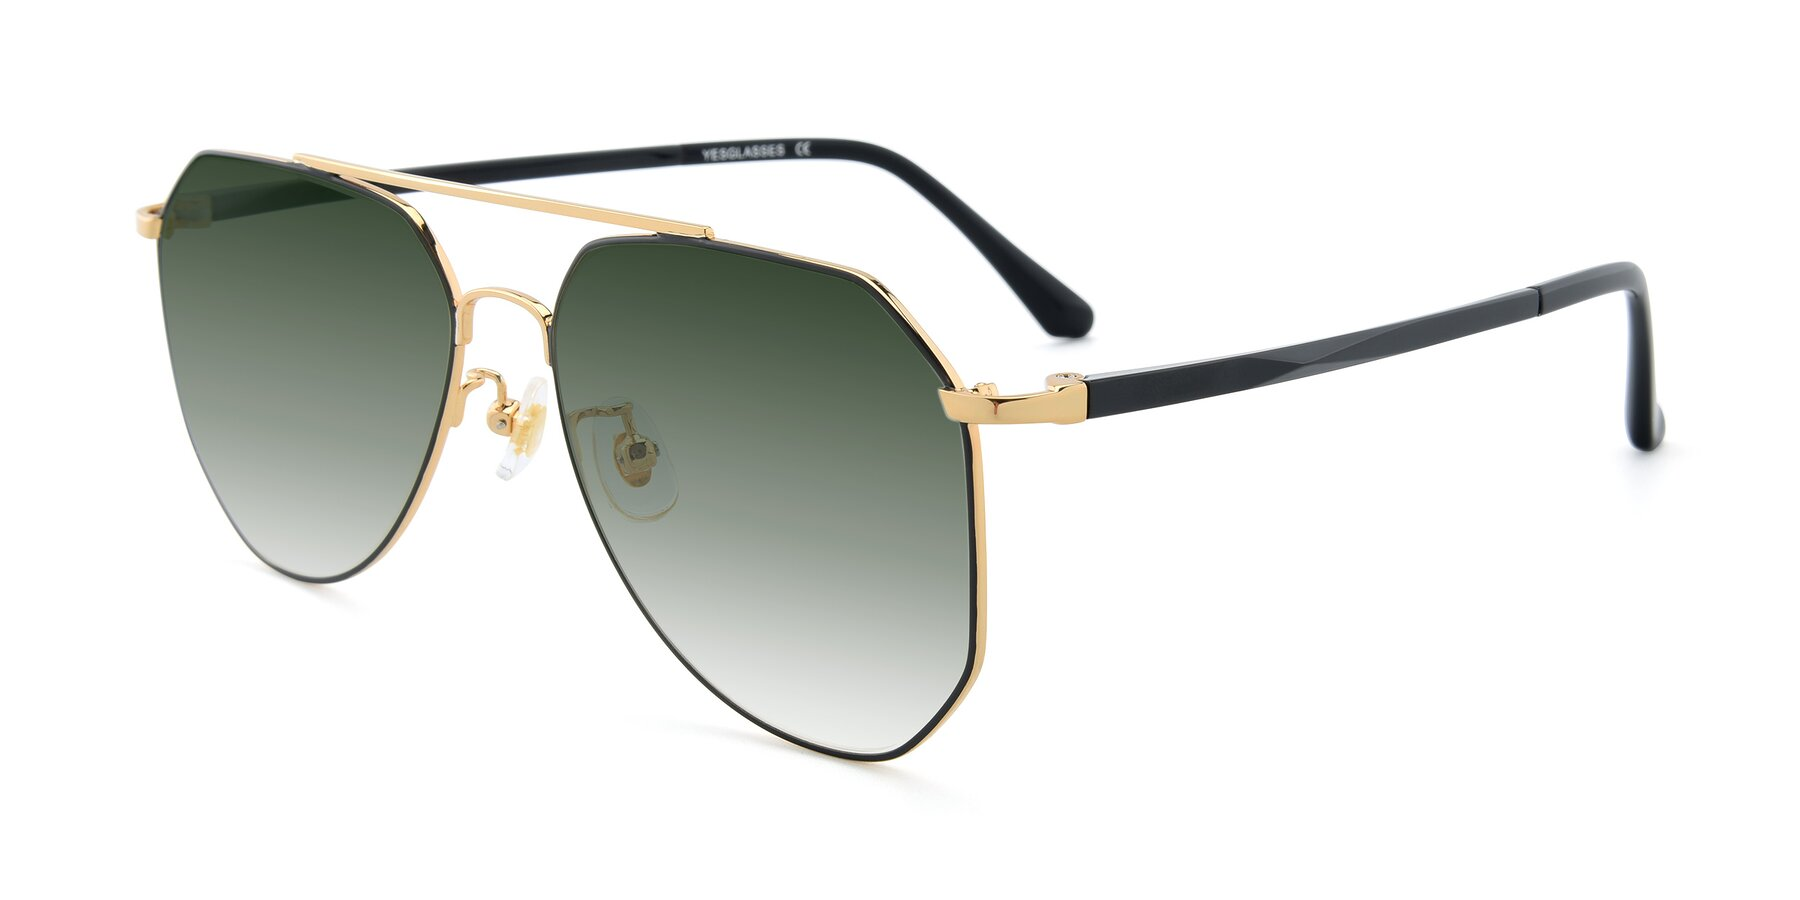 Angle of XC-8040 in Black/ Gold with Green Gradient Lenses